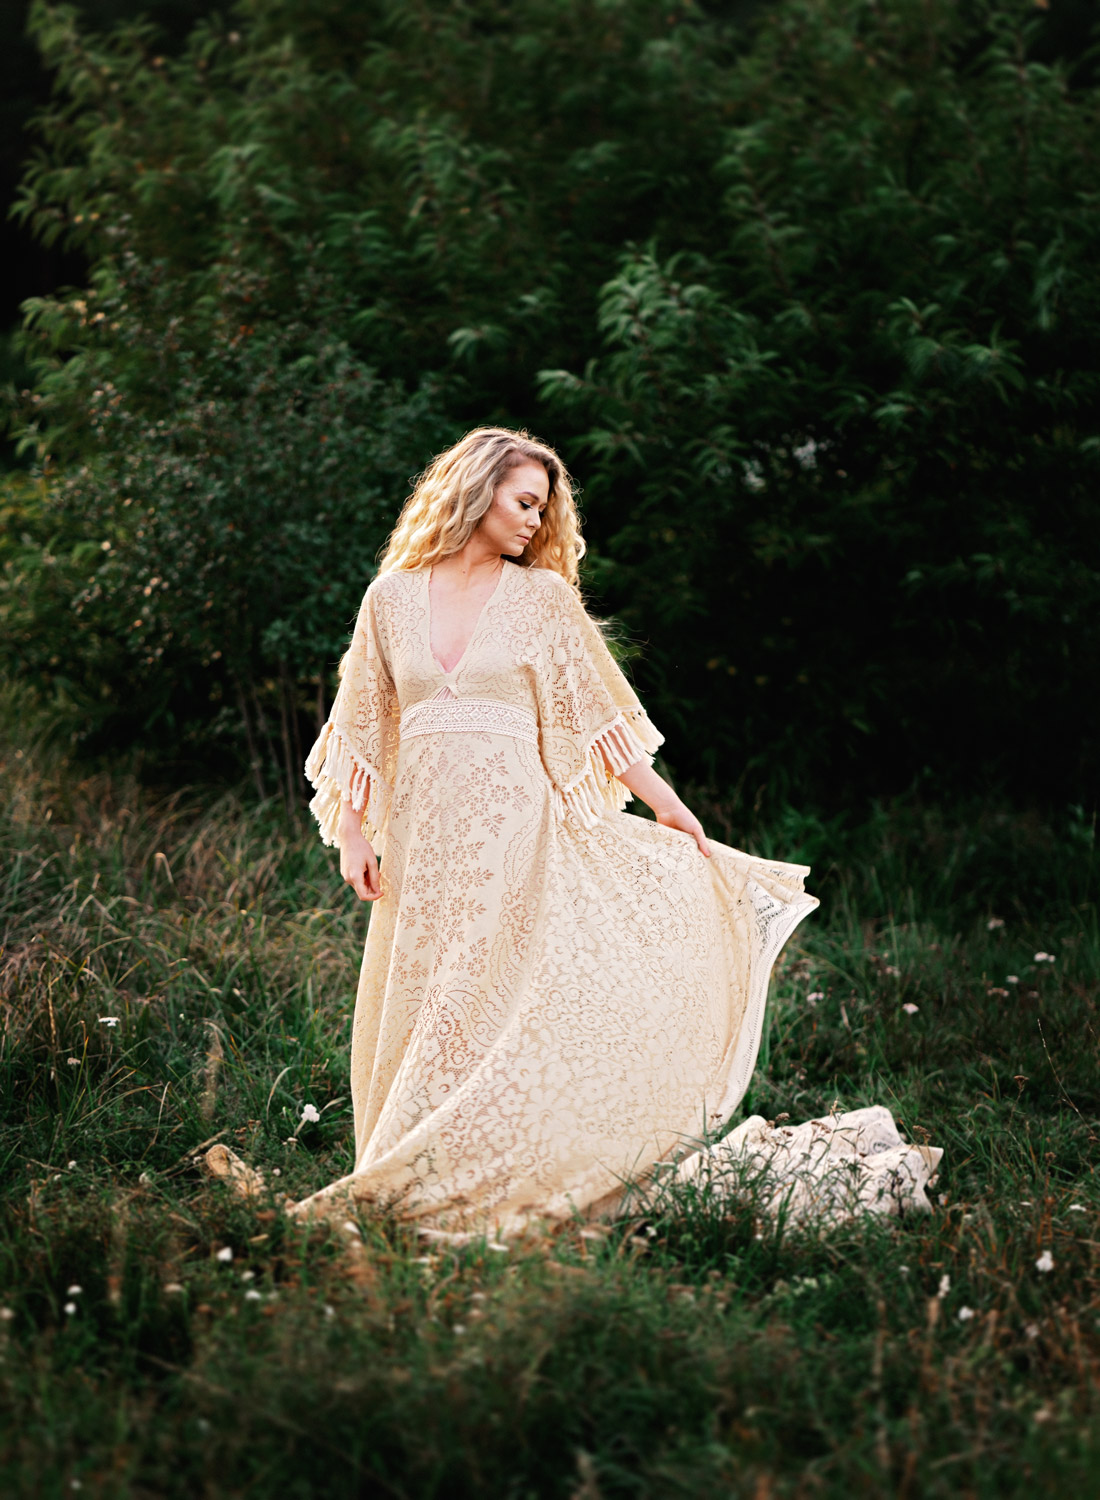 boho portrait of young blonde woman in beautiful boho chique dress in greenery by German fashion photographer sarah havens